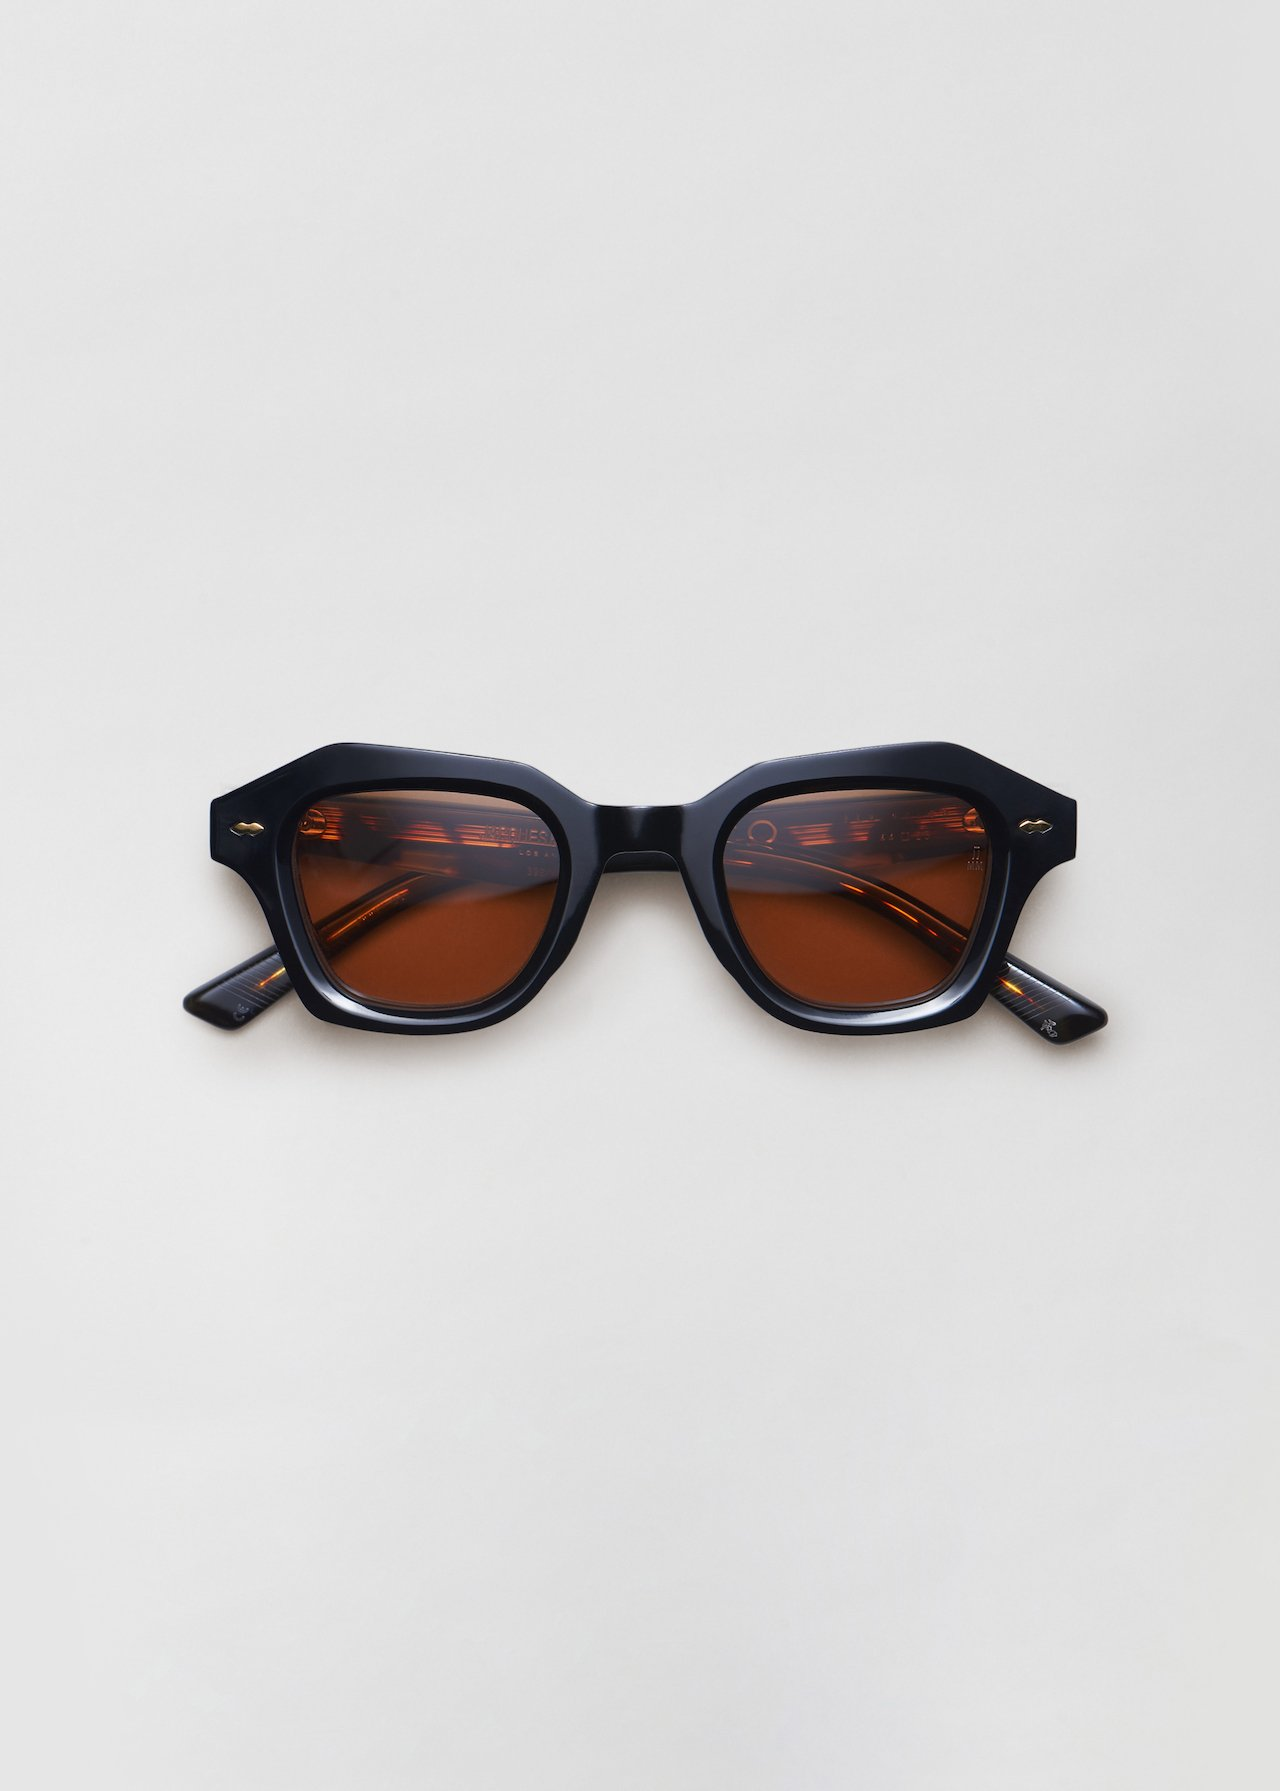 Schindler Sunglasses in Empire in Noir by Co Collections